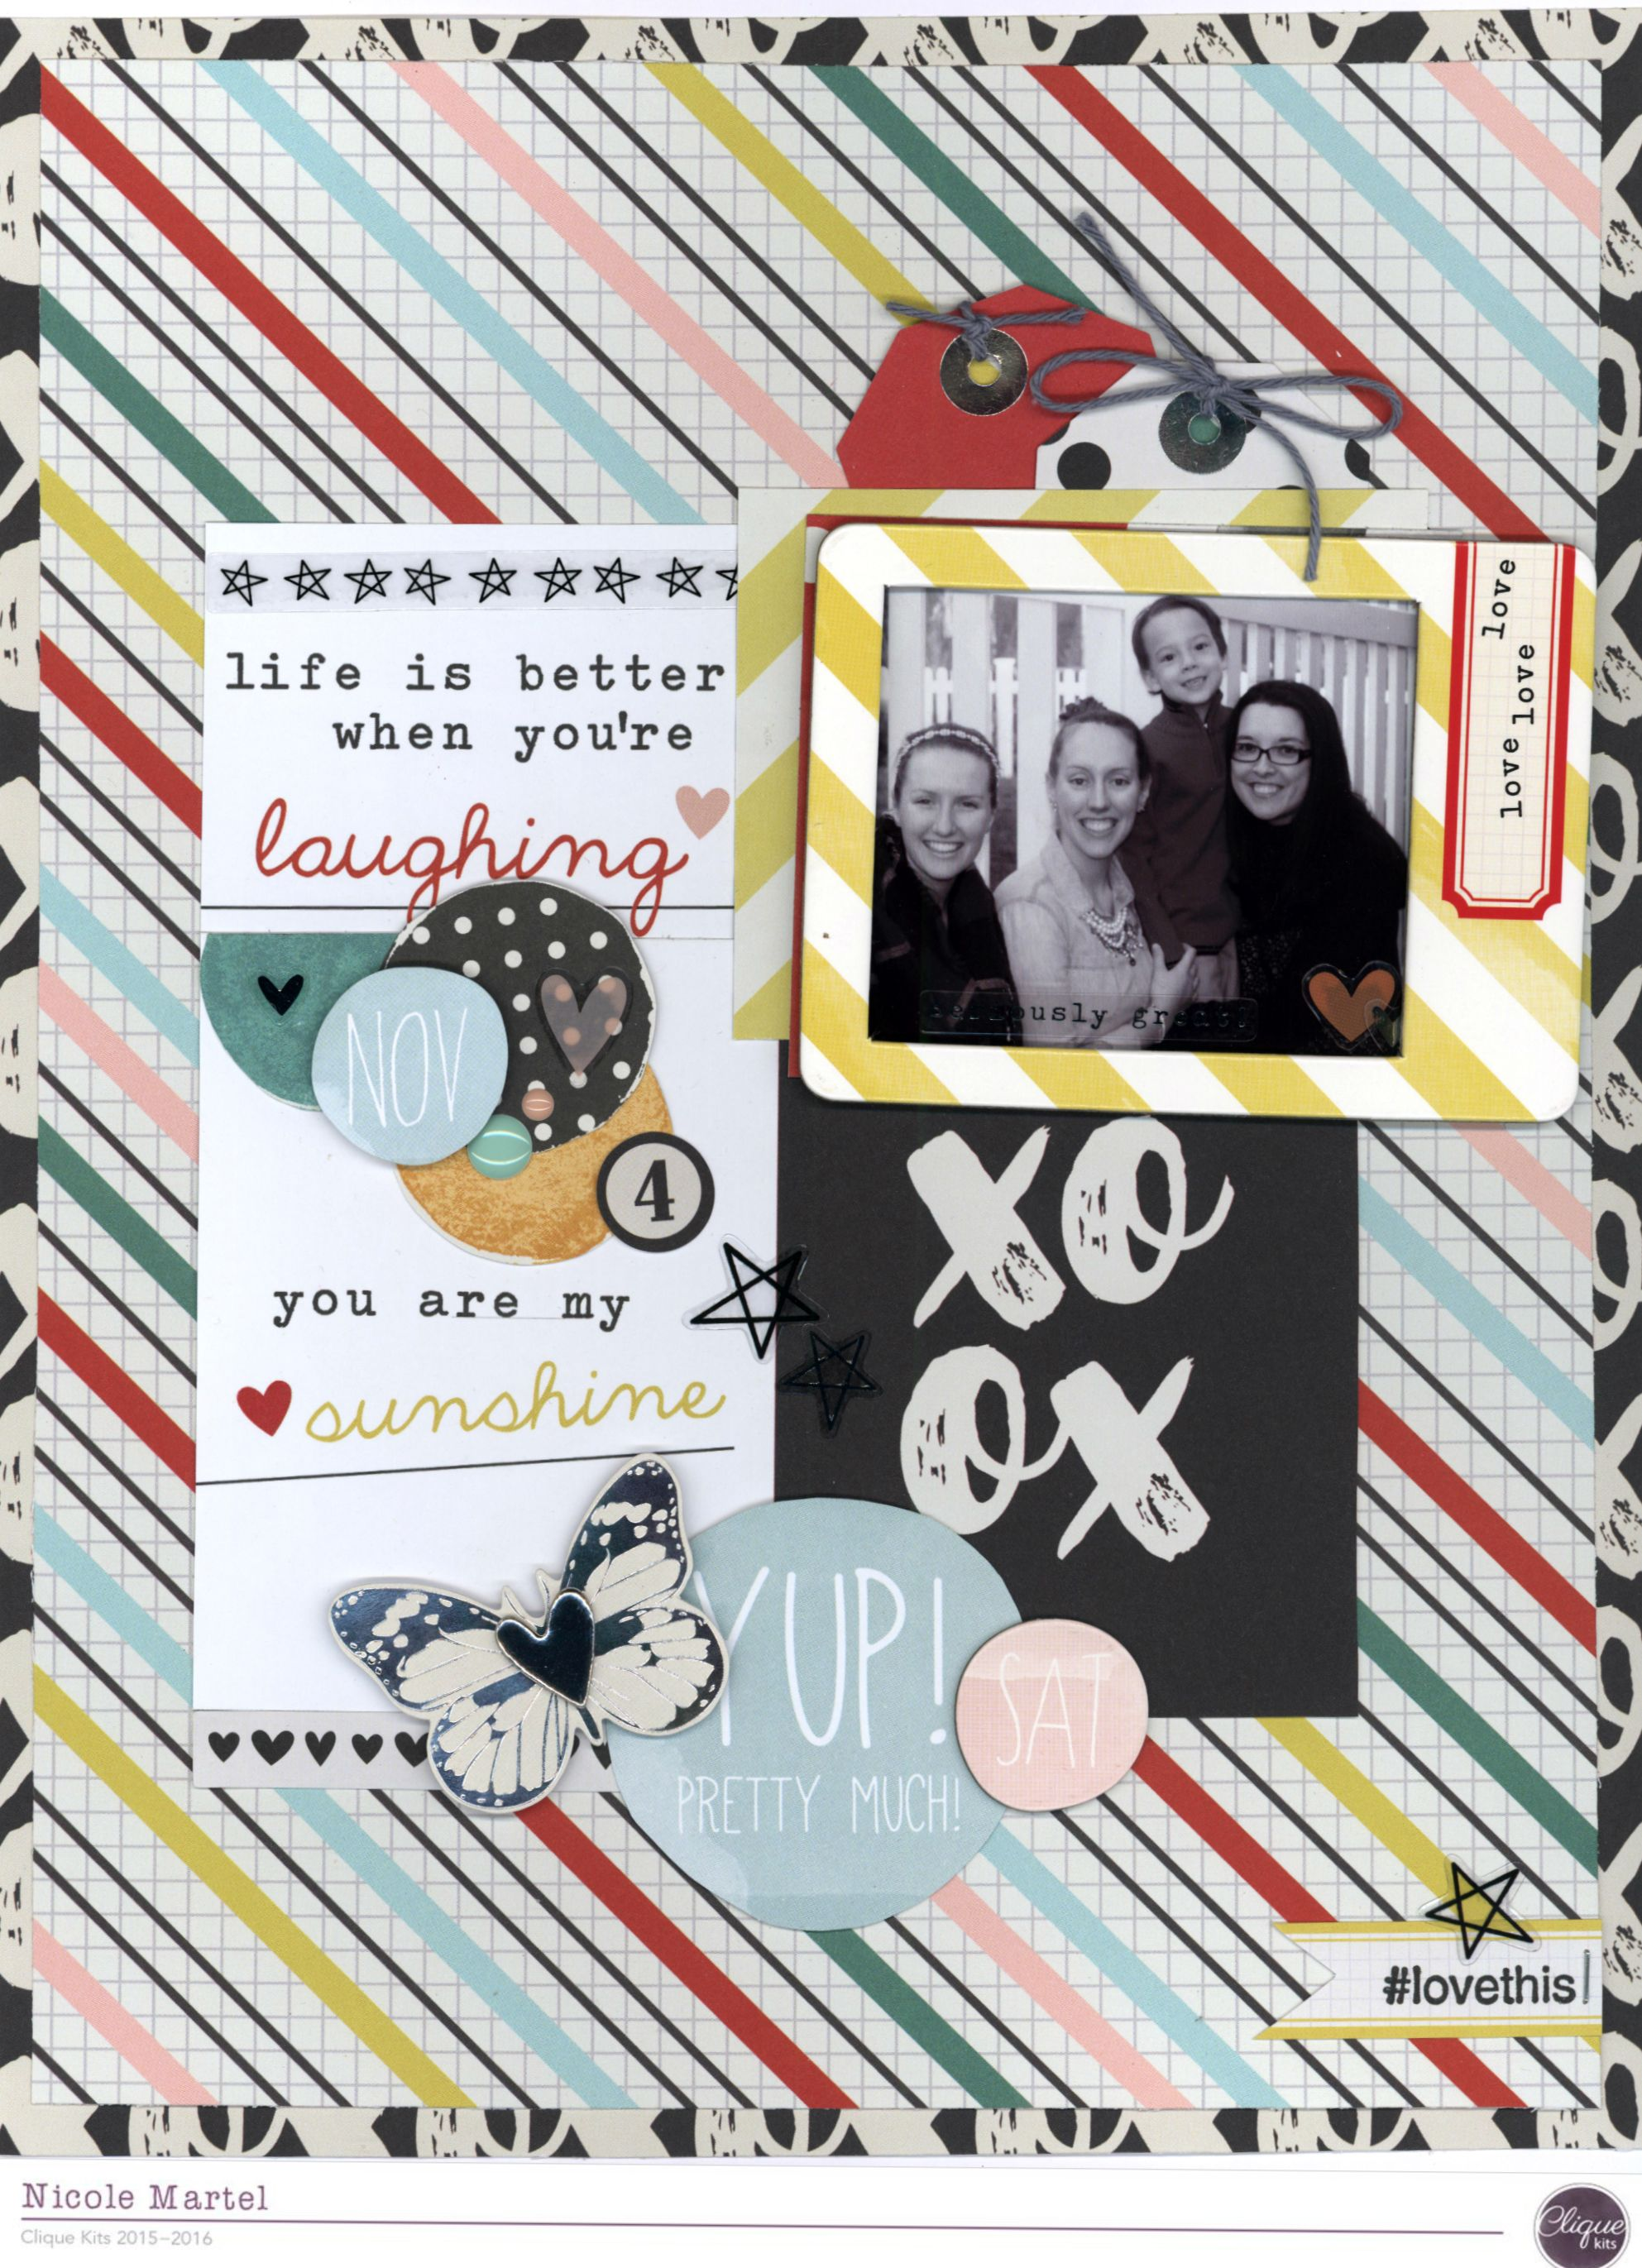 Life+is+better+when+you're+laughing - Scrapbook.com